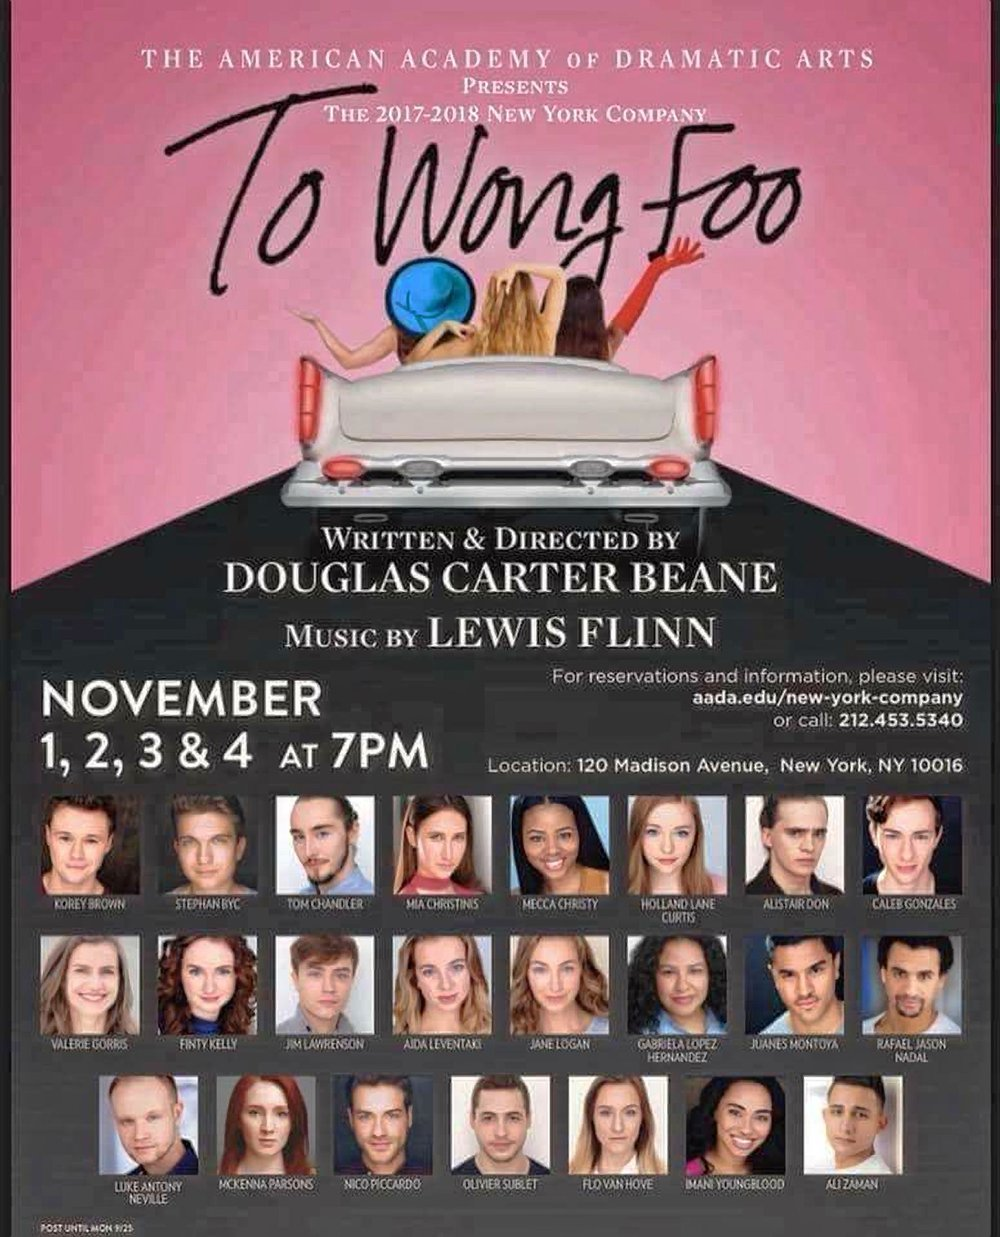 to wong foo - Finty will be playing the role of Betty Lou and Our Lady of the Highway Sky and Sea in the world premiere of Douglas Carter Beane's new musical. Adapted from his original screenplay starring Patrick Swayze and Wesley Snipes. Director: Douglas Carter Beane Music: Lewis FlinnMusical Direction: Brad SimmonsChoreography: Lorin Latarro and Shiloh GoodinPerformance Dates: November 1st, 2nd, 3rd, and 4th 2017